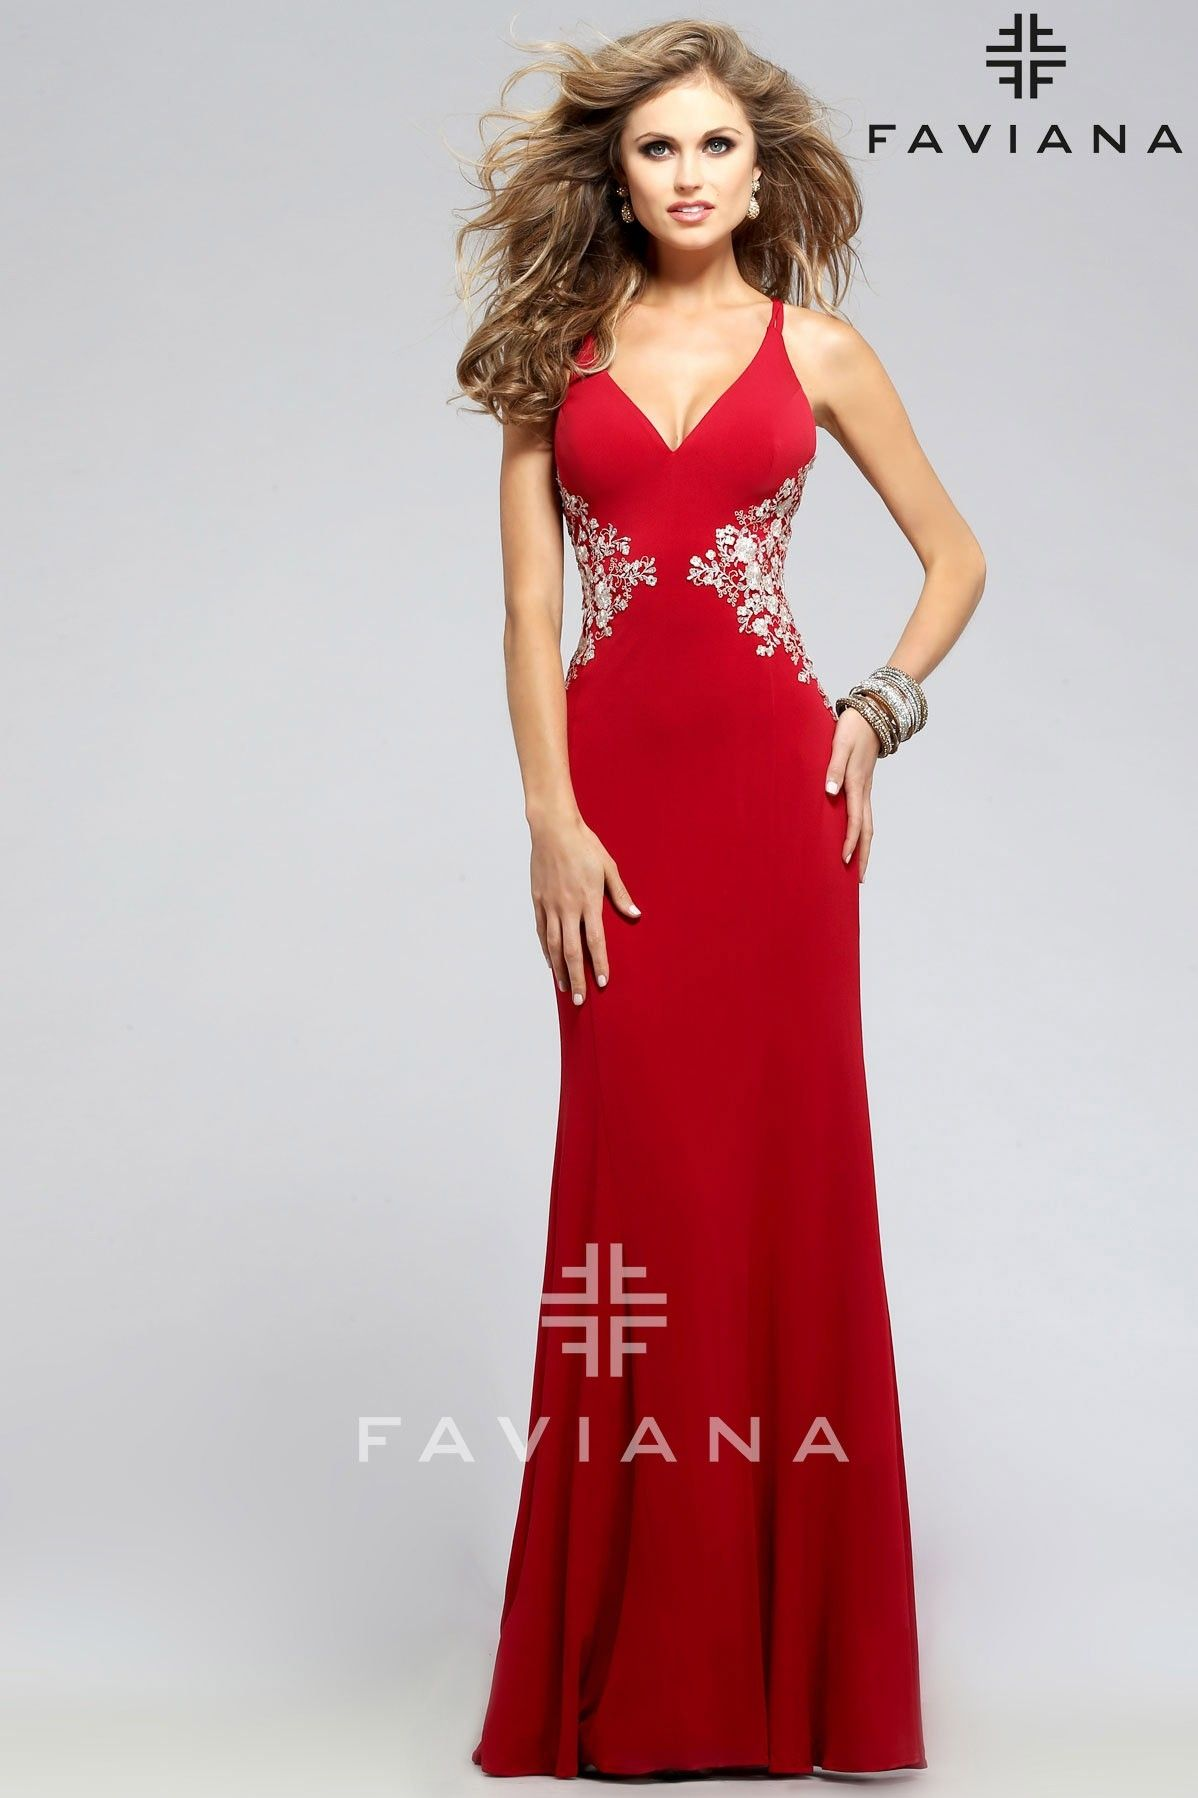 bc77ec2e2ad Faviana Jersey v-neck with lace applique and lace-up back - Prom Dresses  2016